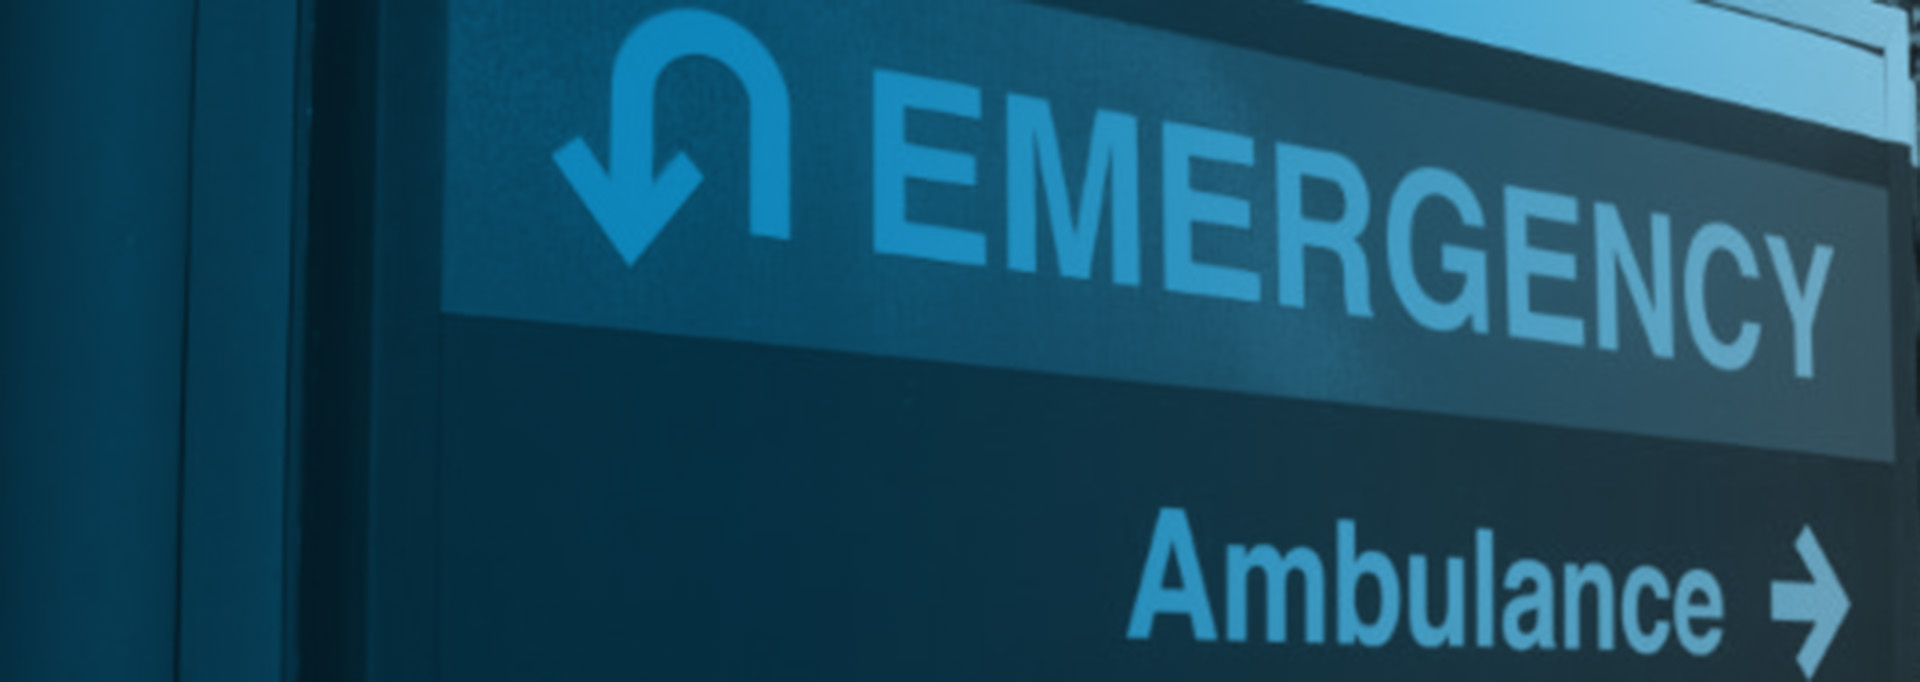 Emergency Room Sign for hospital rotator